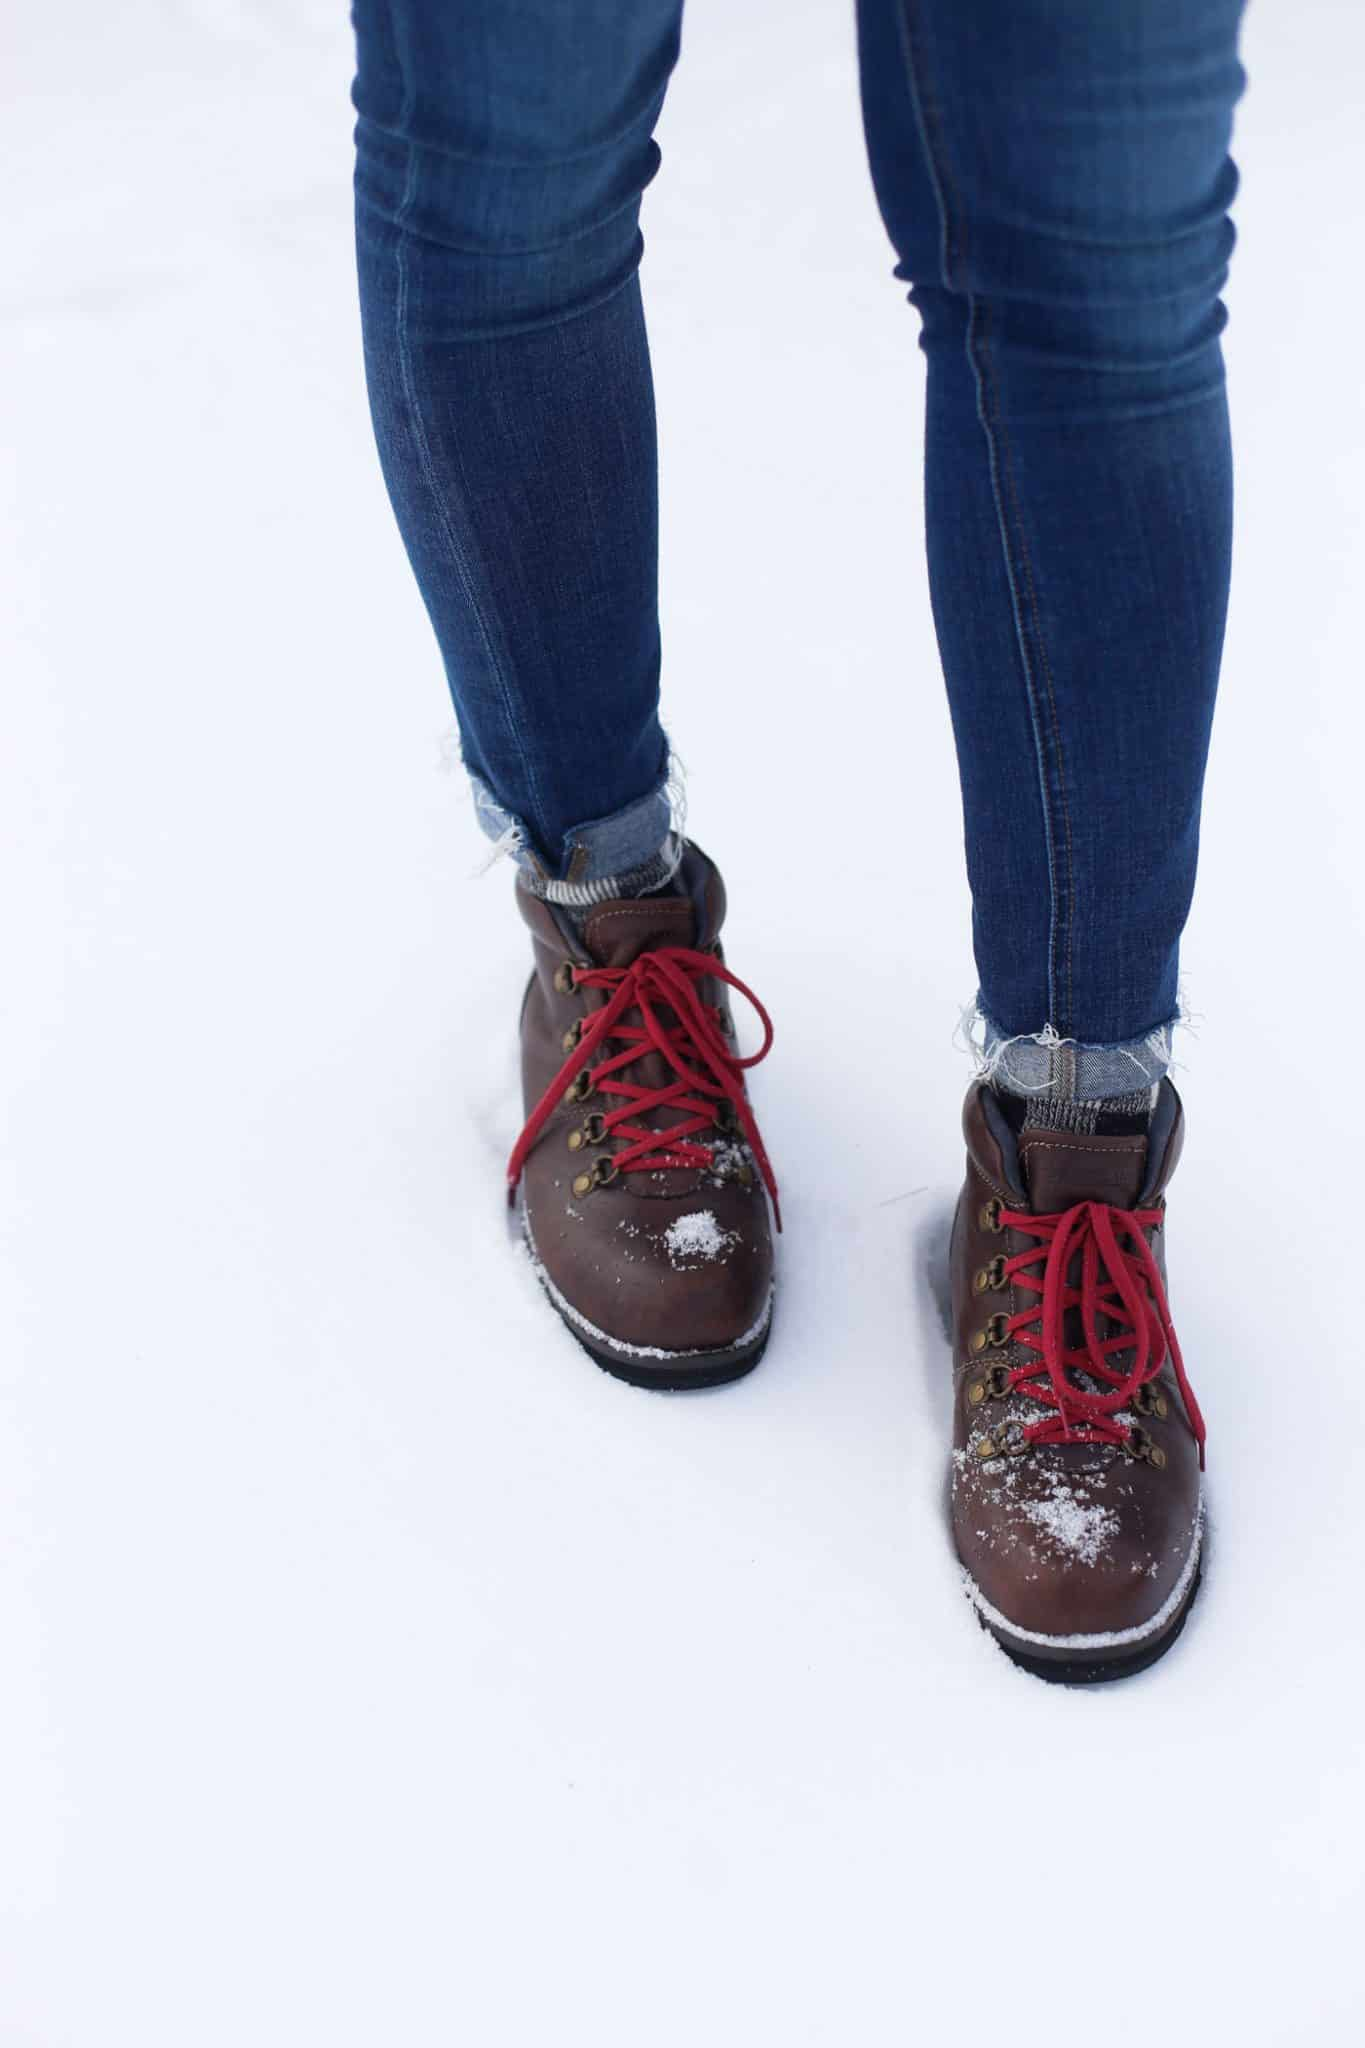 winter boots, eastland boots, boots and jeans for winter - My Style Vita @mystylevita